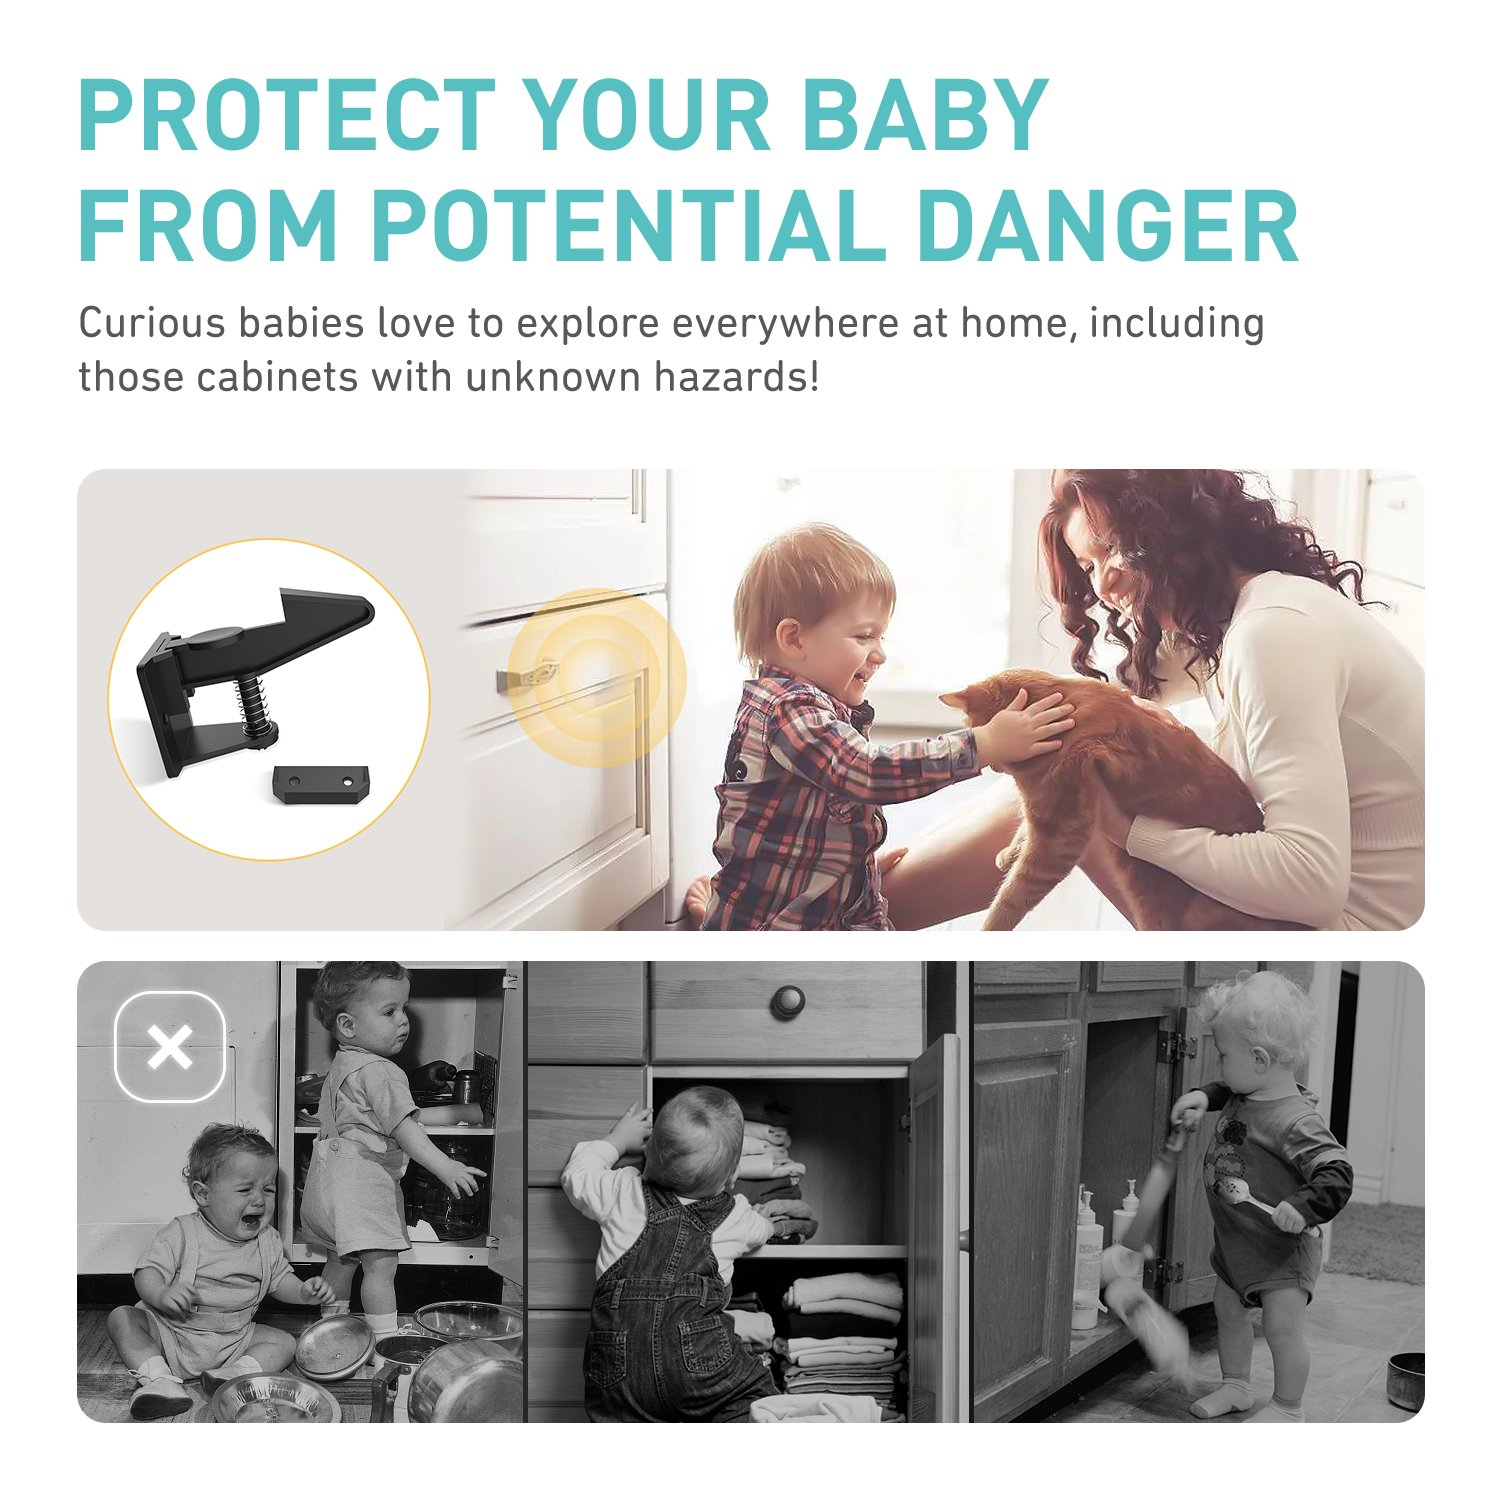 Cabinet Locks Safety Locks Baby Proofing Cabinets, Fast and Easy Installation 10 Packs Child Cabinet Locks-Without Tools Drilling Measuring for Drawers, Cabinets, Closets by Babebay (Image #1)